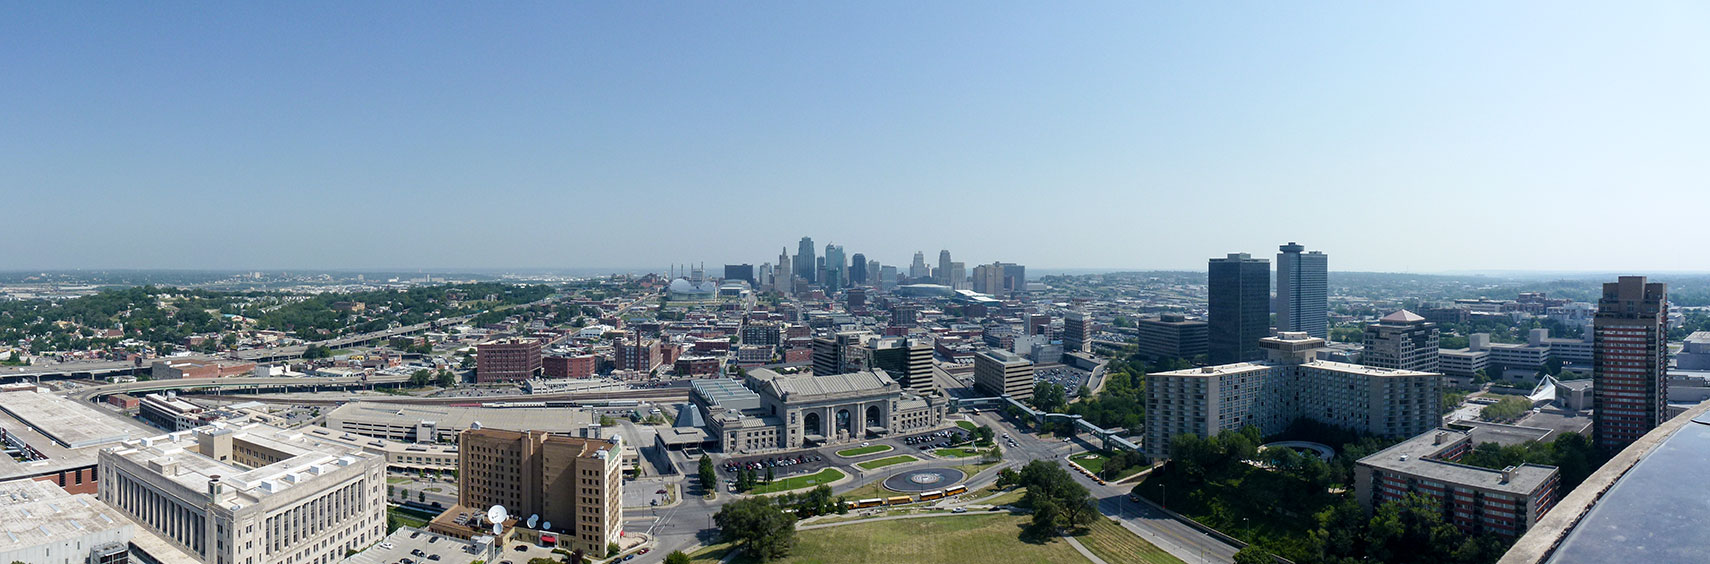 View from the Liberty Memorial on Downtown Kansas City, Missouri